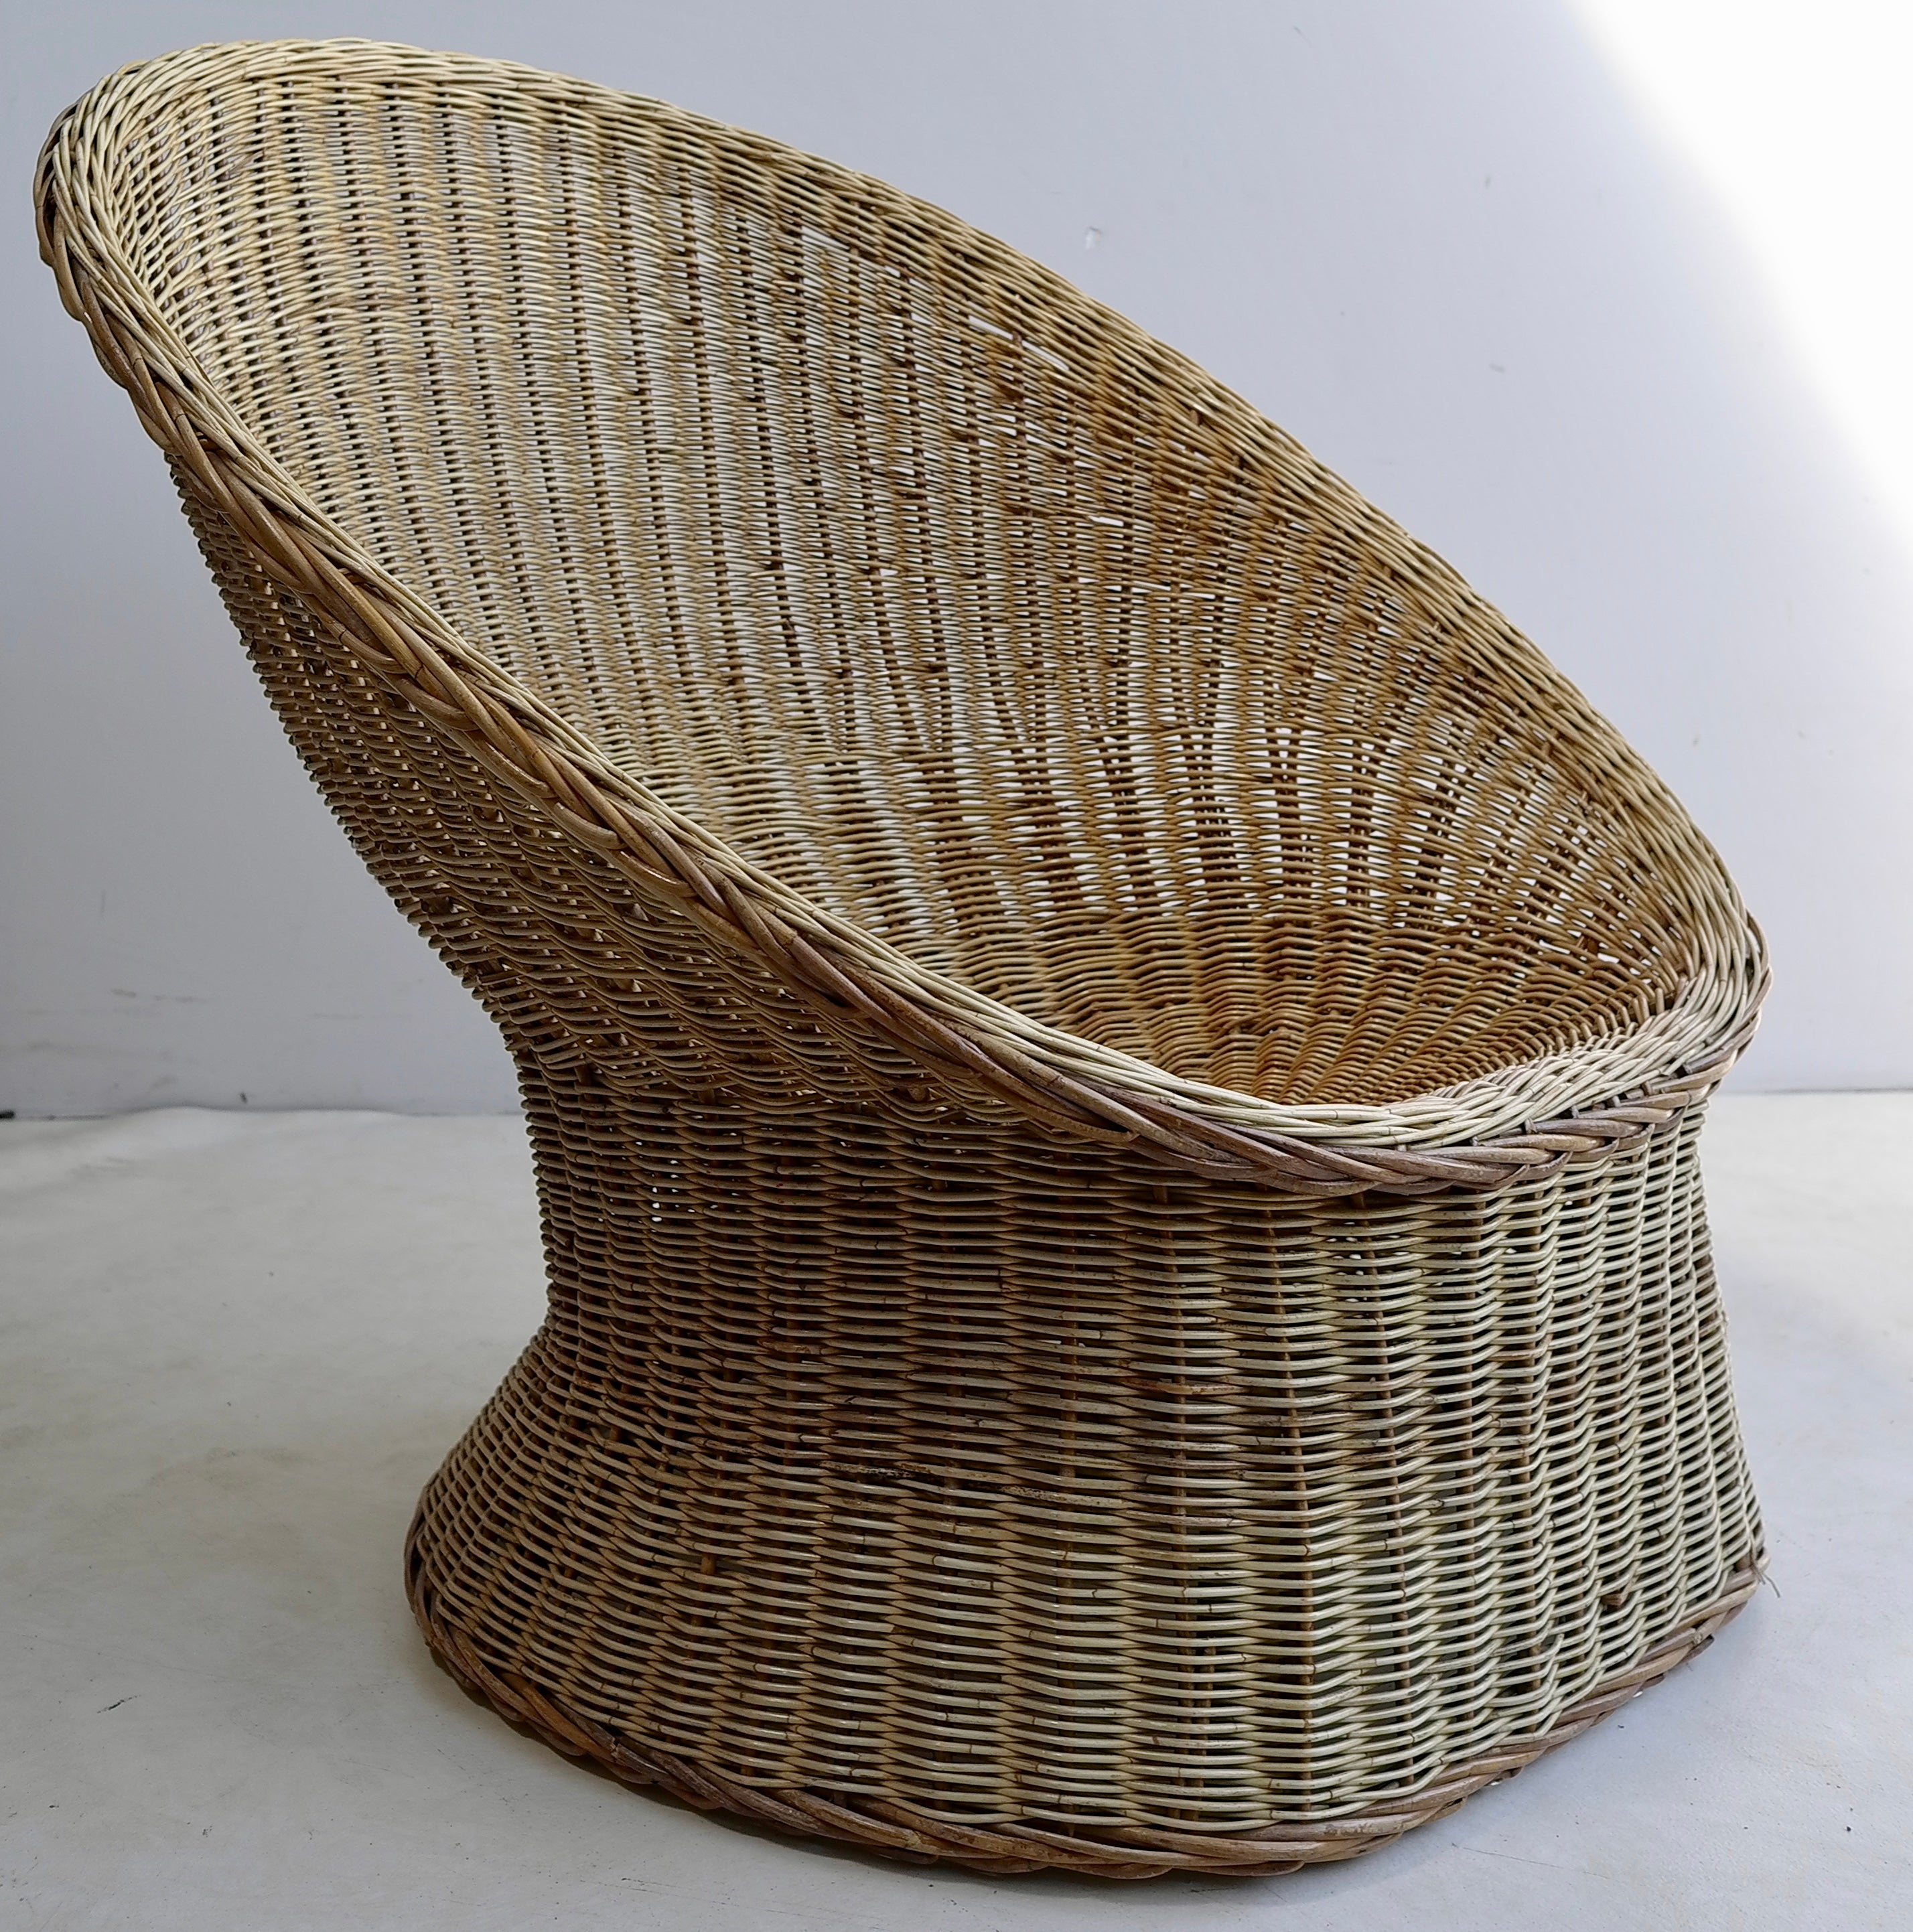 Egg Wicker Chair Rare Wicker Egg Shaped Armchair By Wim Den Boon Holland 1952